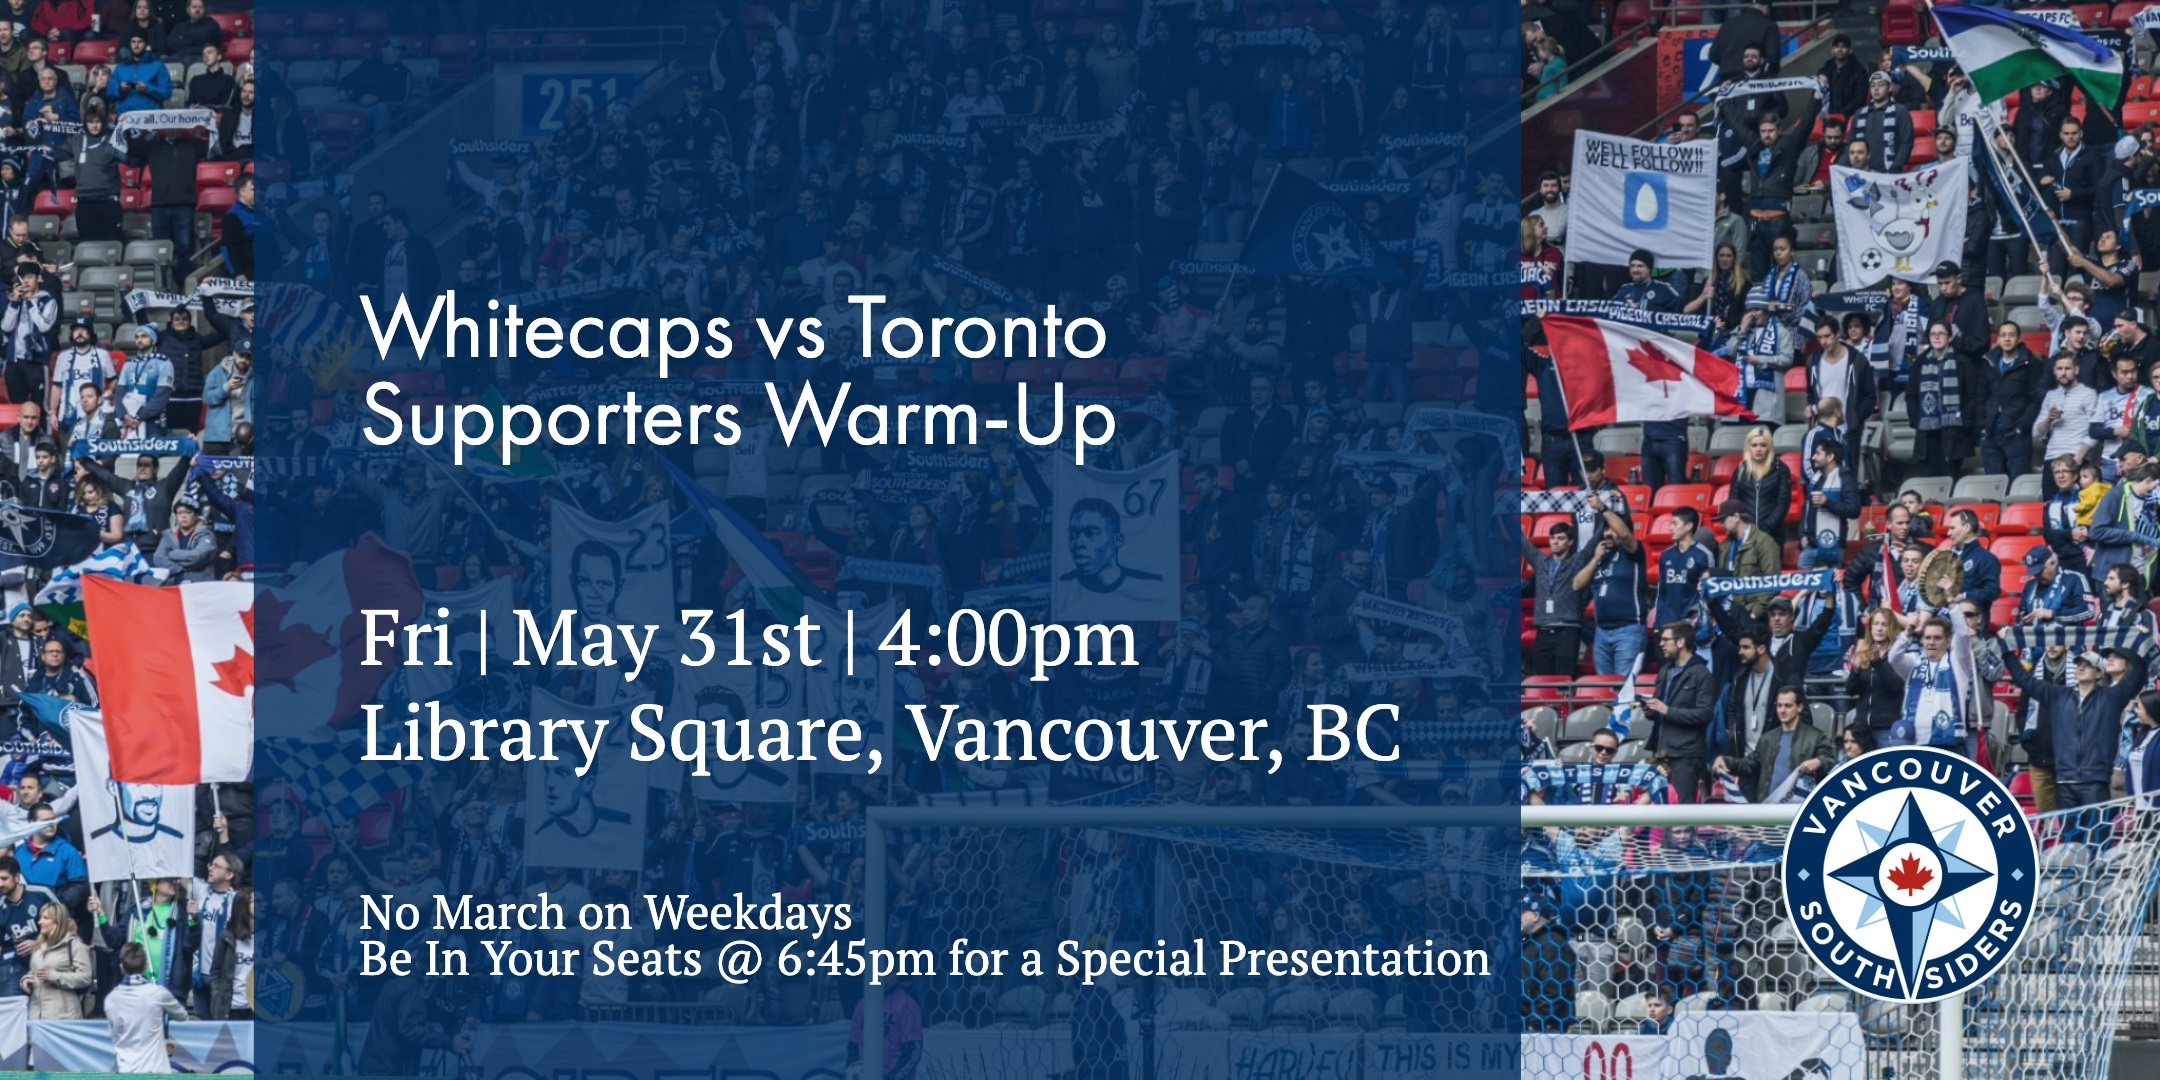 Whitecaps vs Toronto, May 31st. No march on weekdays. Be in the stadium at 6:45 for a special presentation